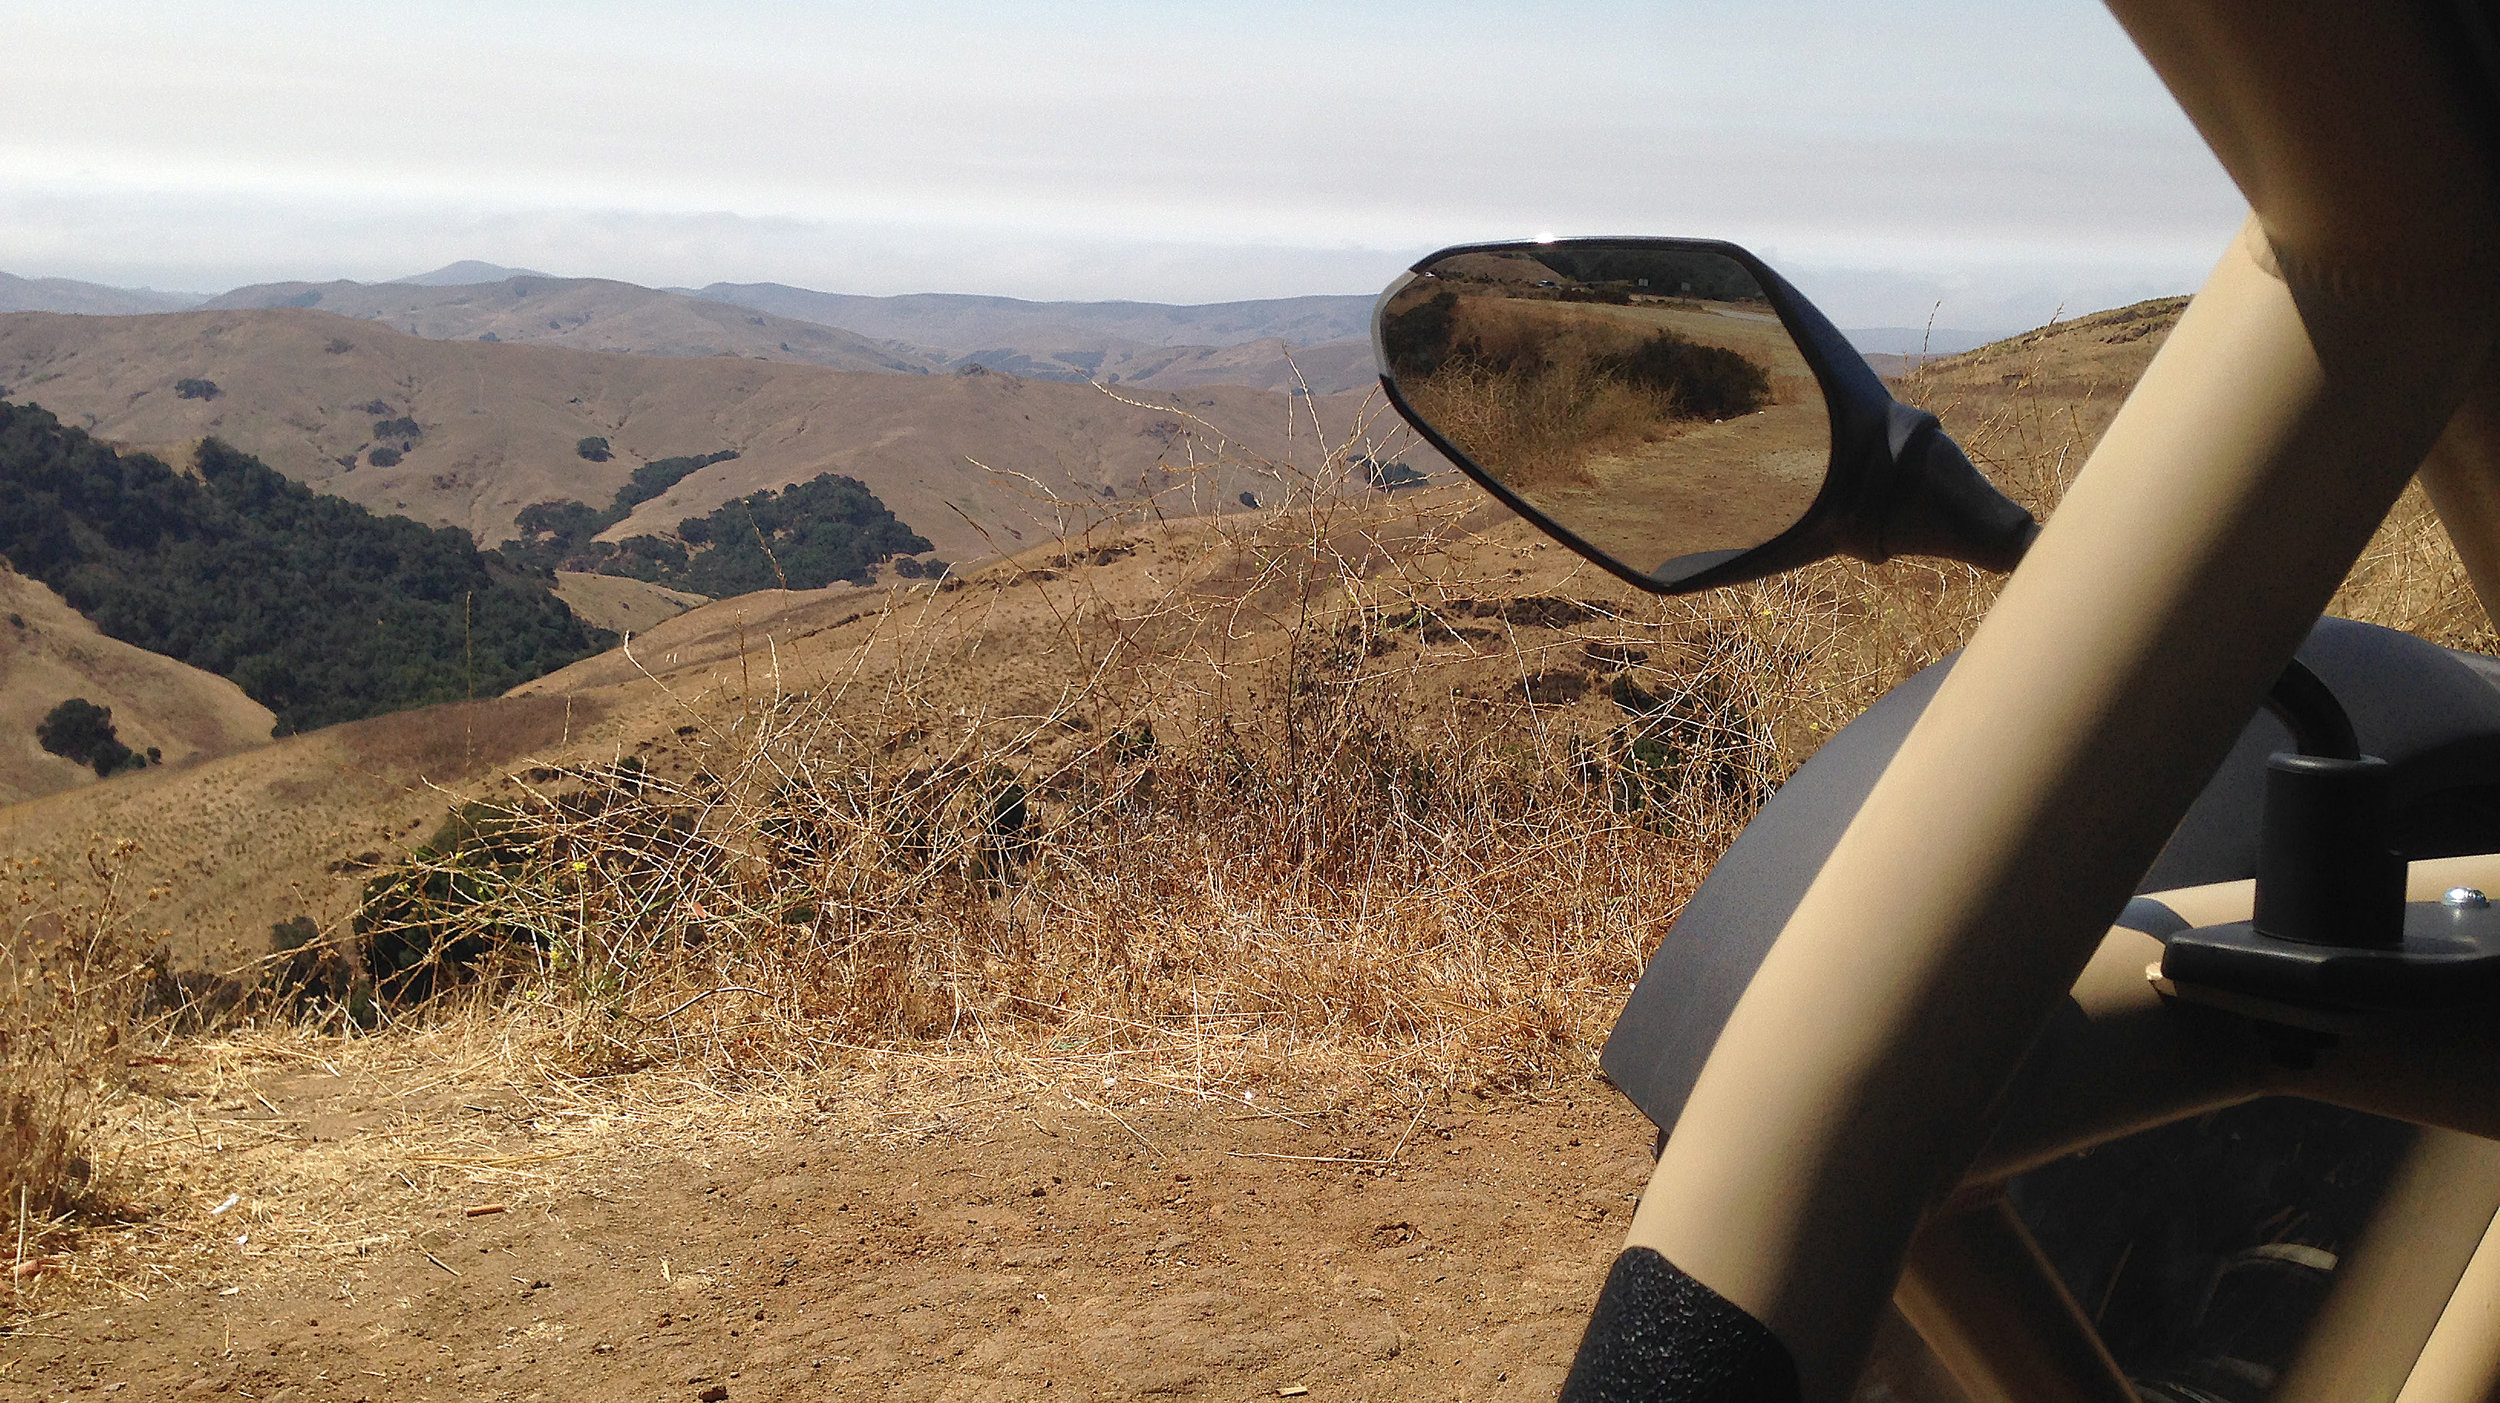 -Exploring dirt roads around Big Sur, California in the Ariel Nomad Tactical